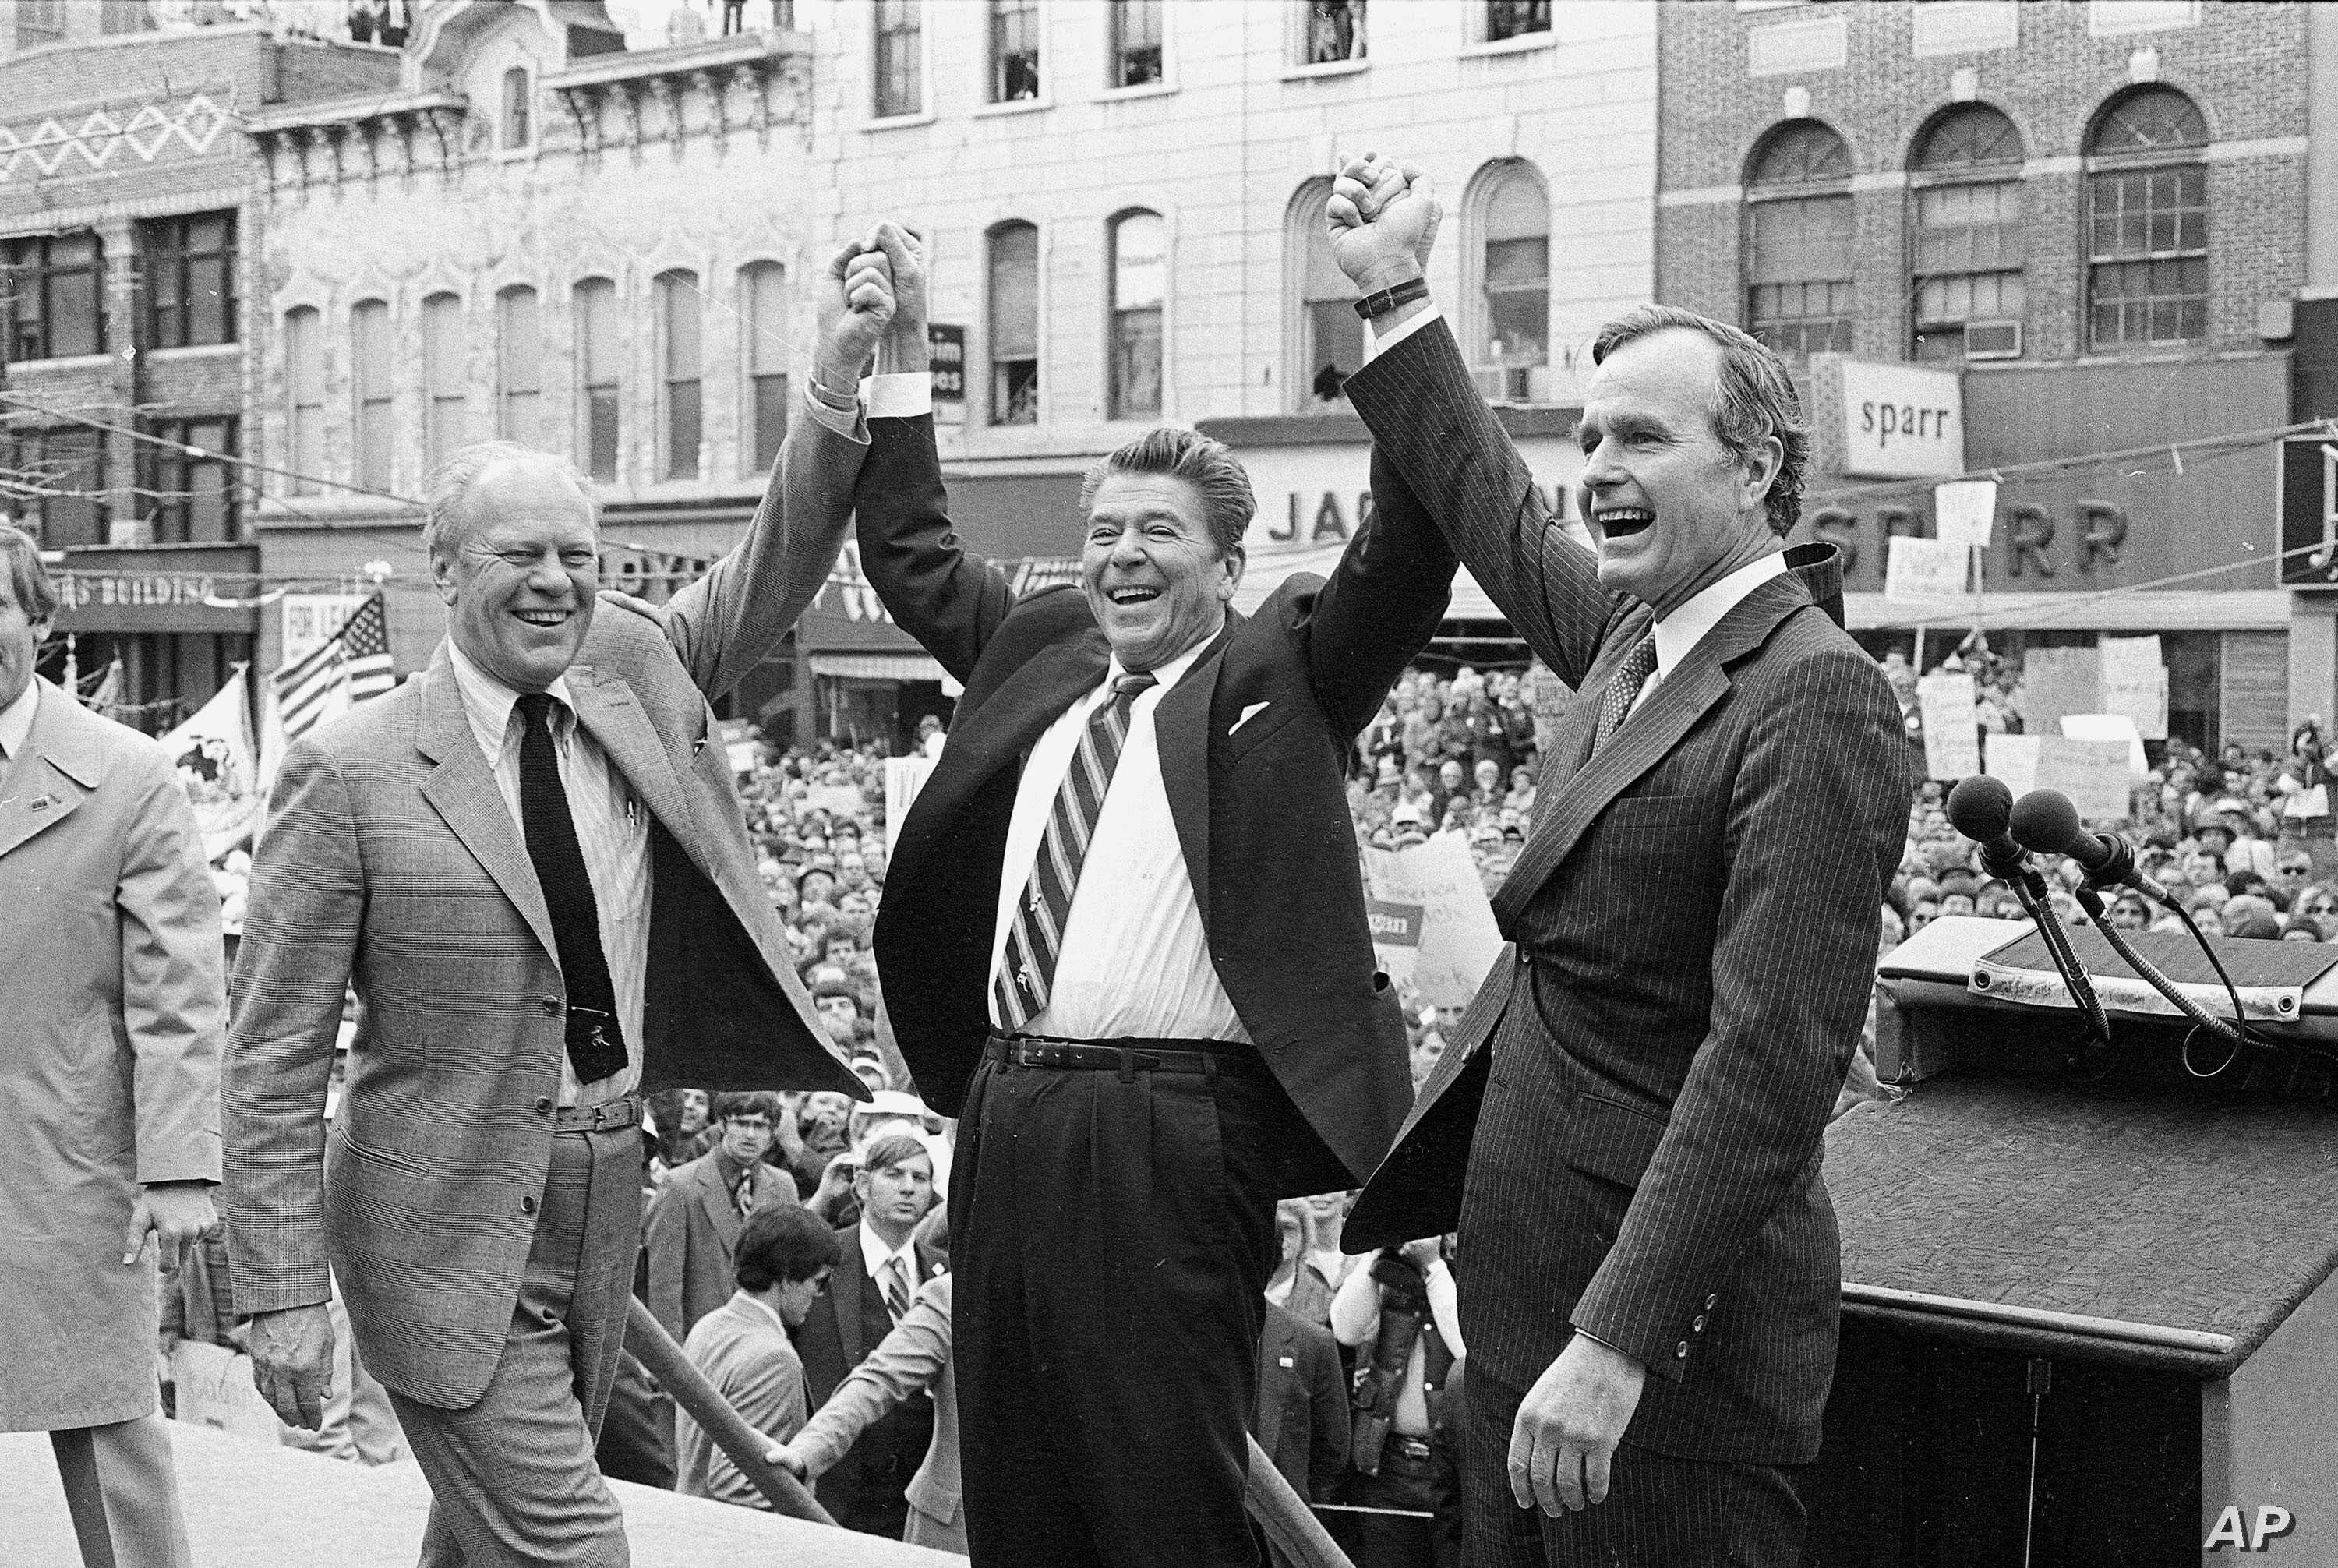 Former president Gerald Ford, left, lends his support to fellow Republican and presidential candidate Ronald Reagan and running mate George Bush, seen here on the final day of campaining in Peoria, Ill., on November 3, 1980.